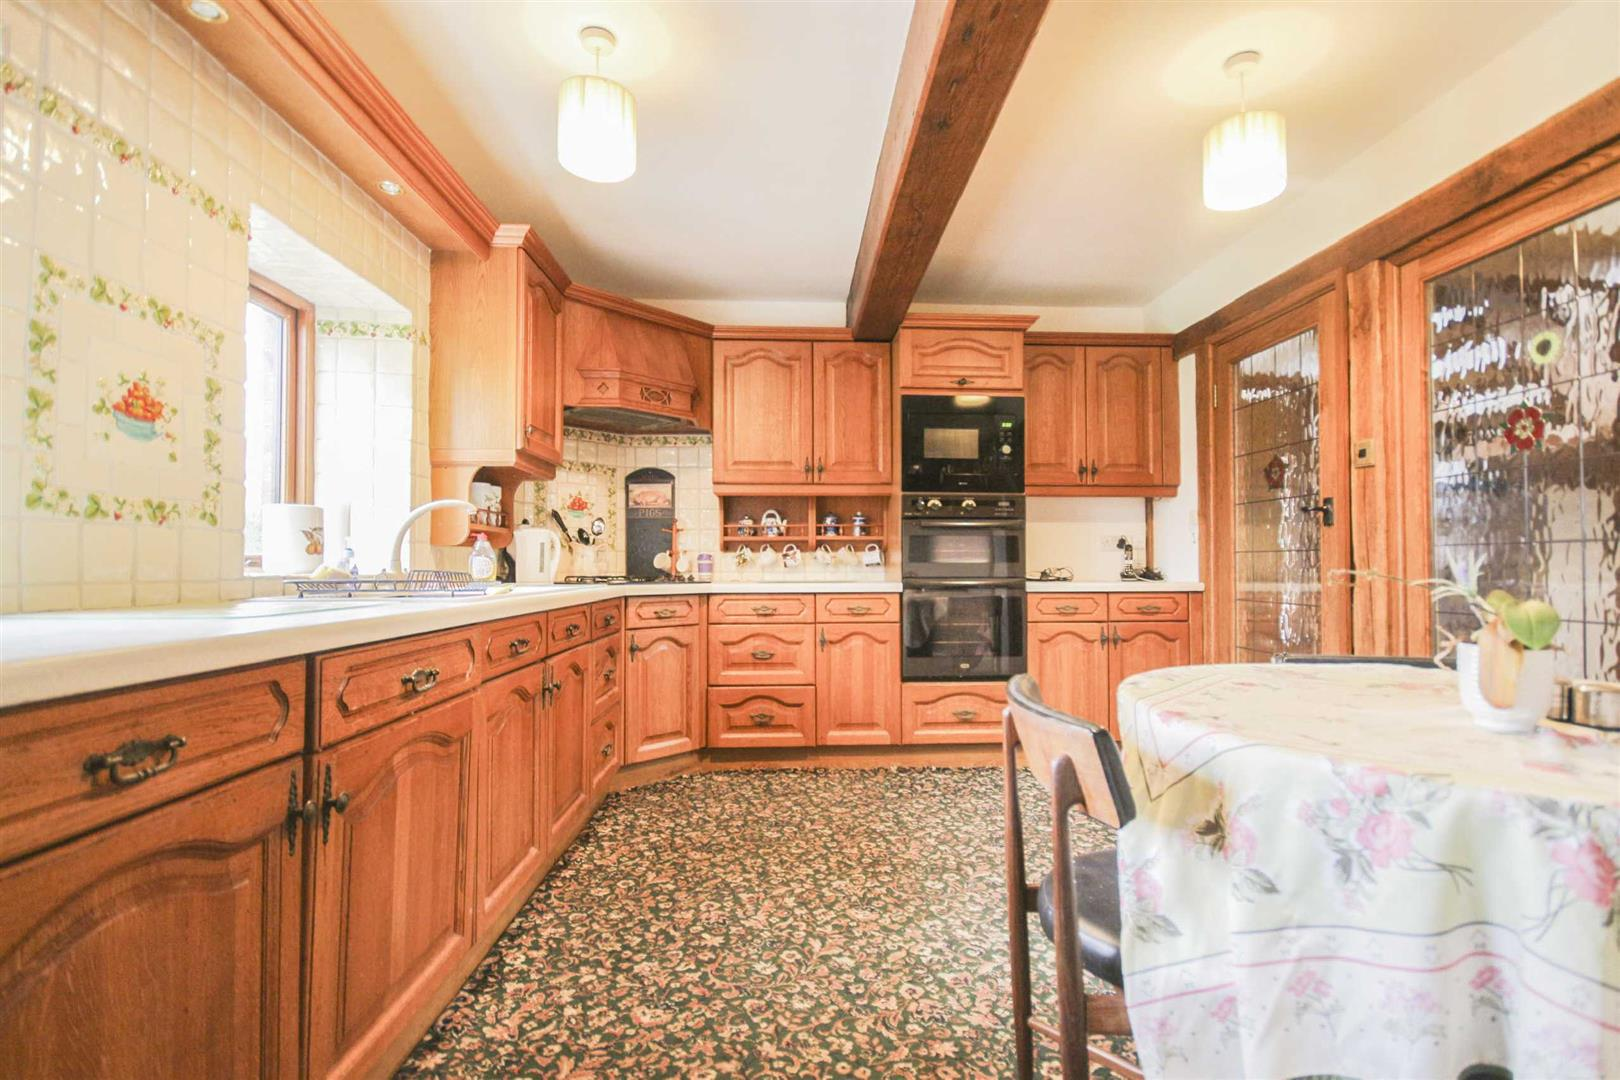 3 Bedroom Barn Conversion For Sale - Image 5